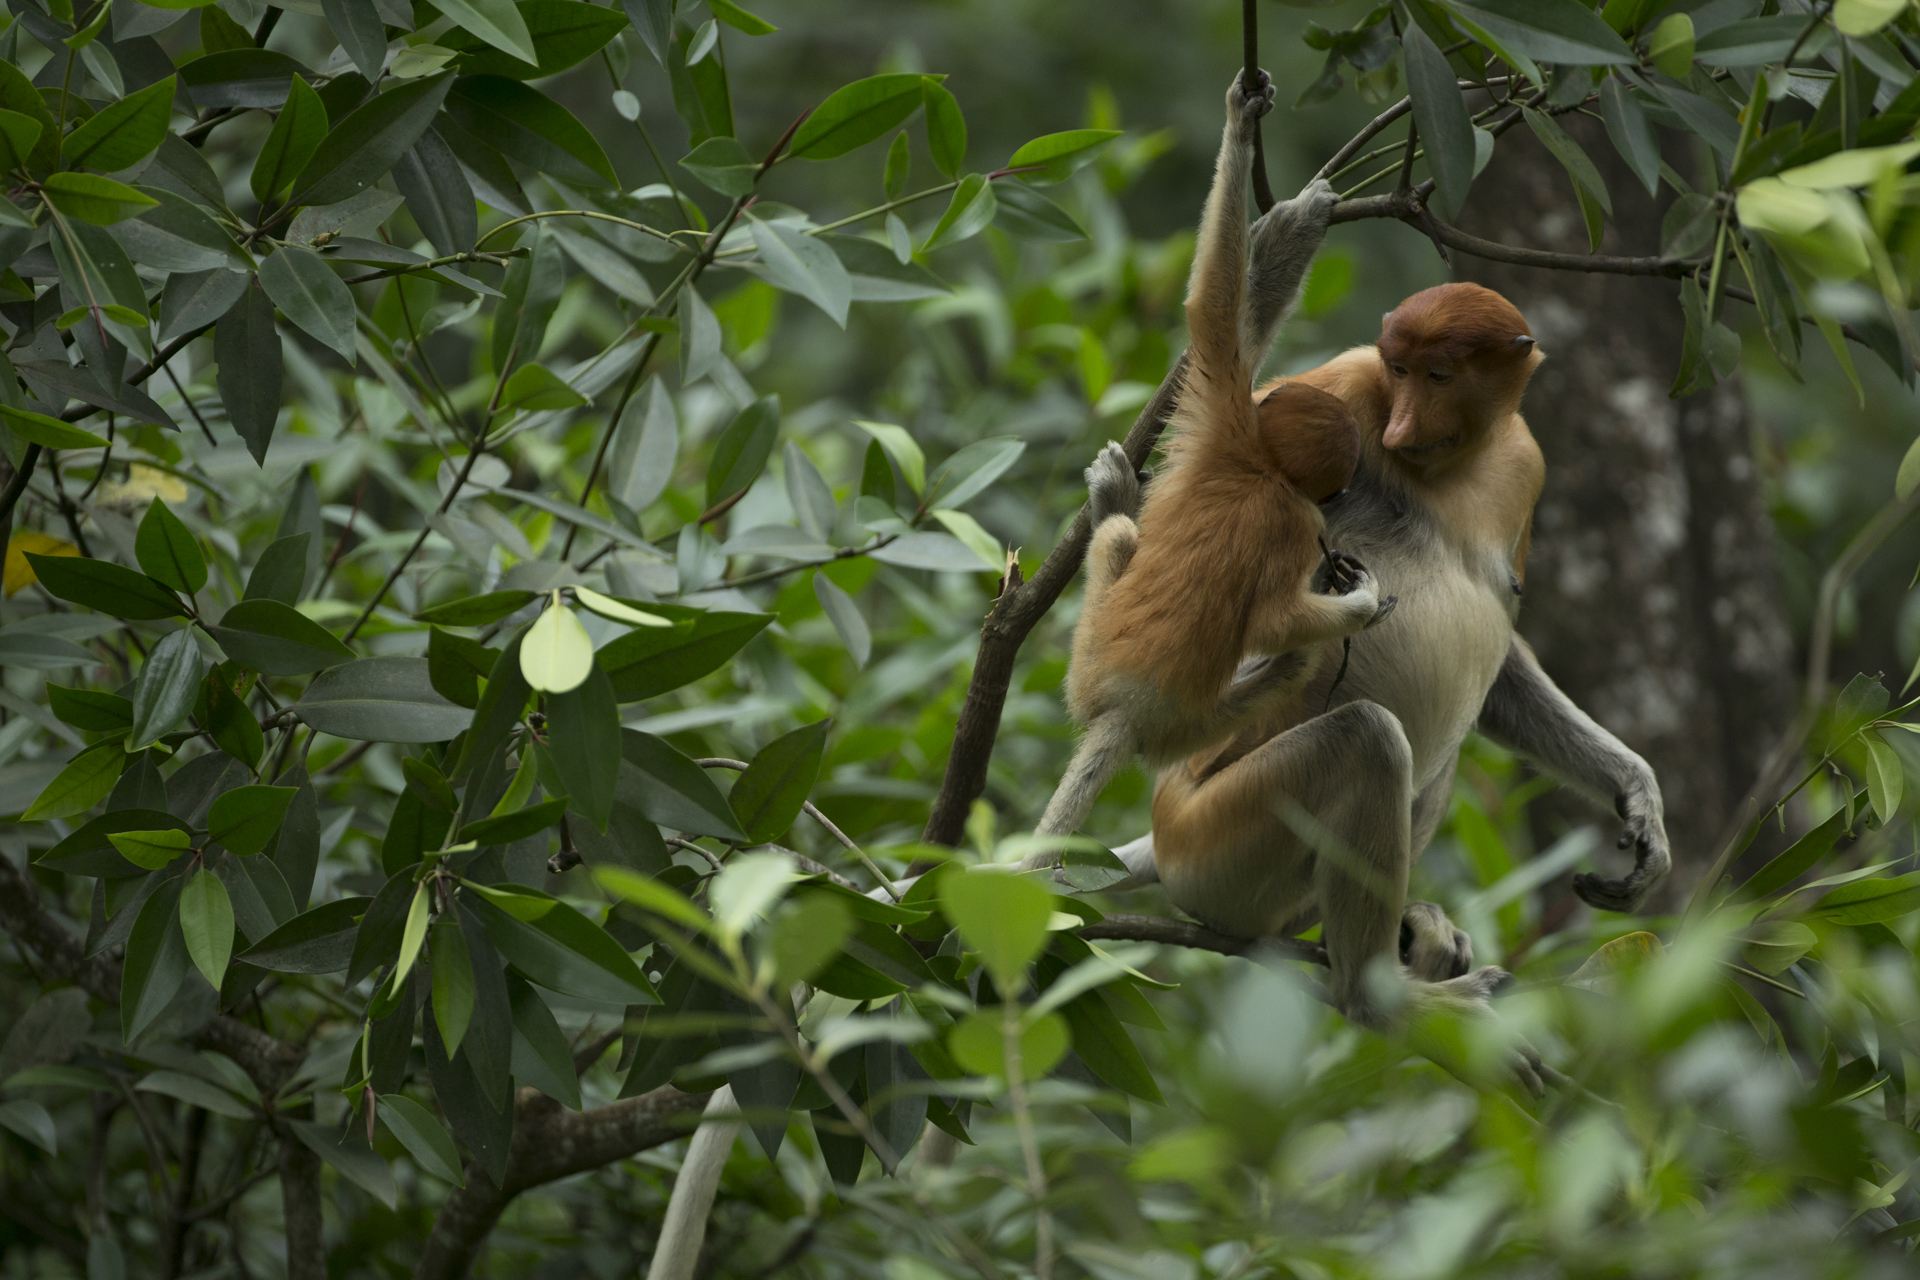 A young proboscis monkey moves to nurse from its mother.